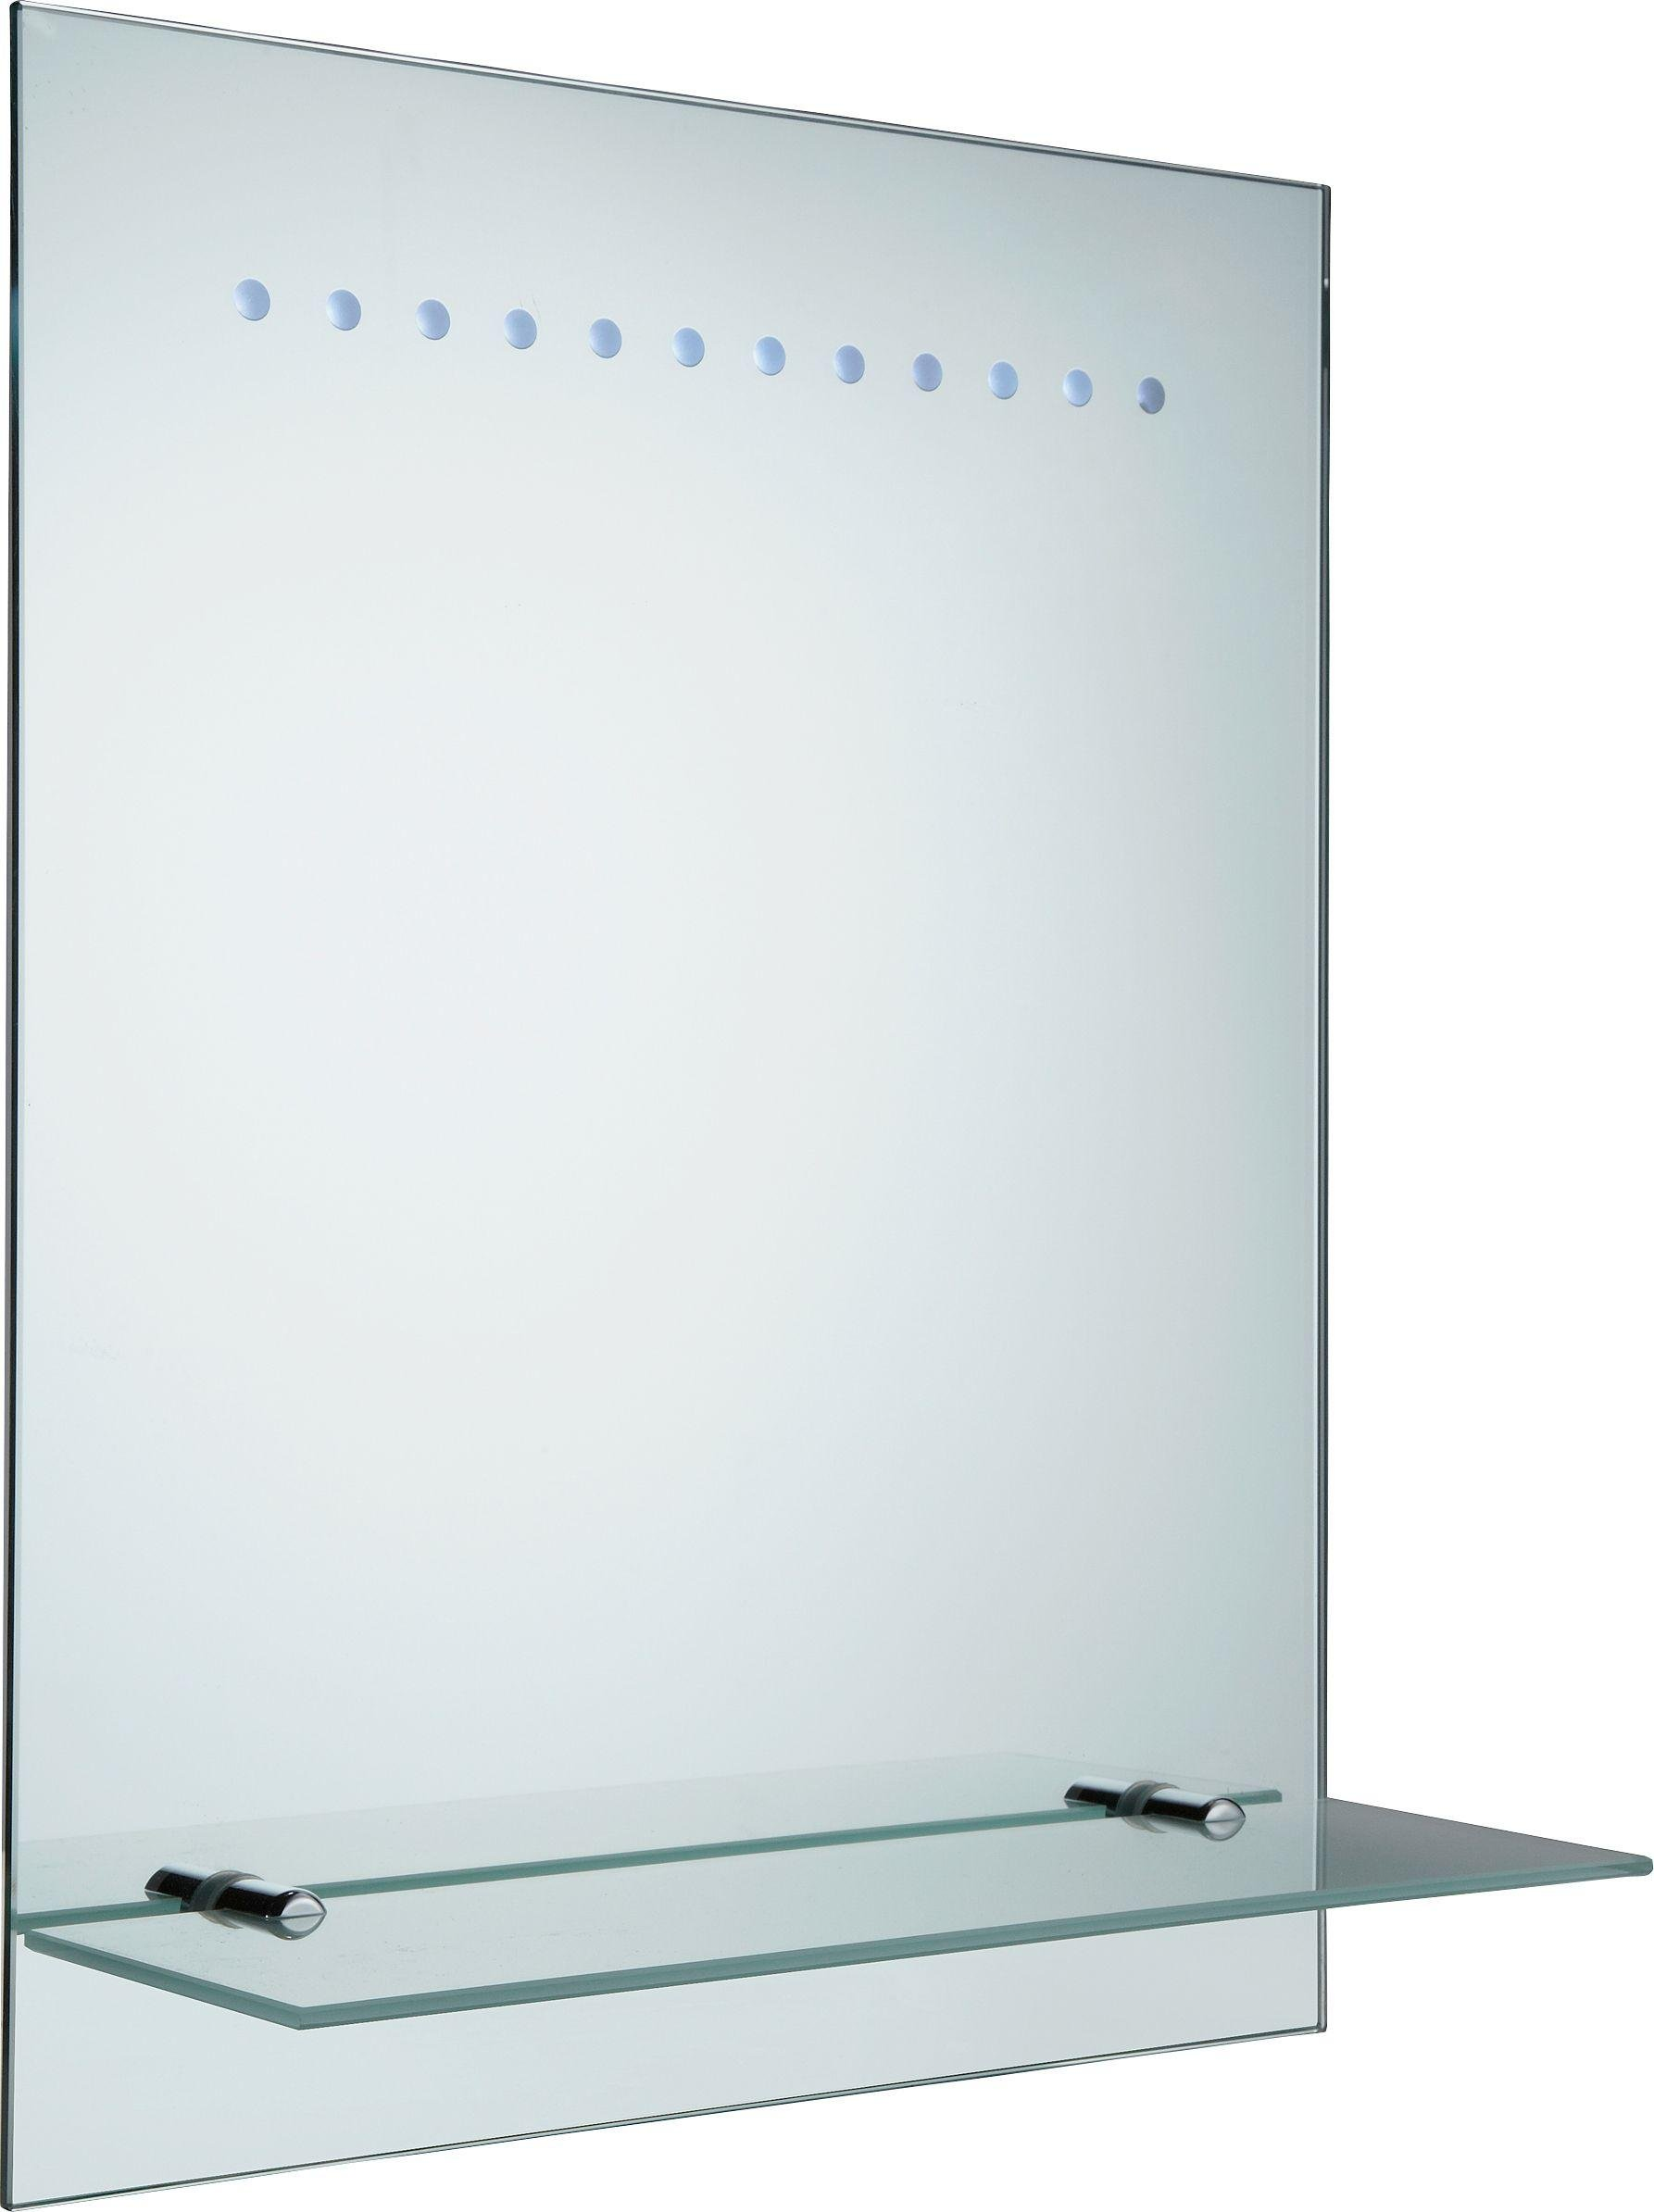 HOME Rec Frosted Illuminated Bathroom Mirror